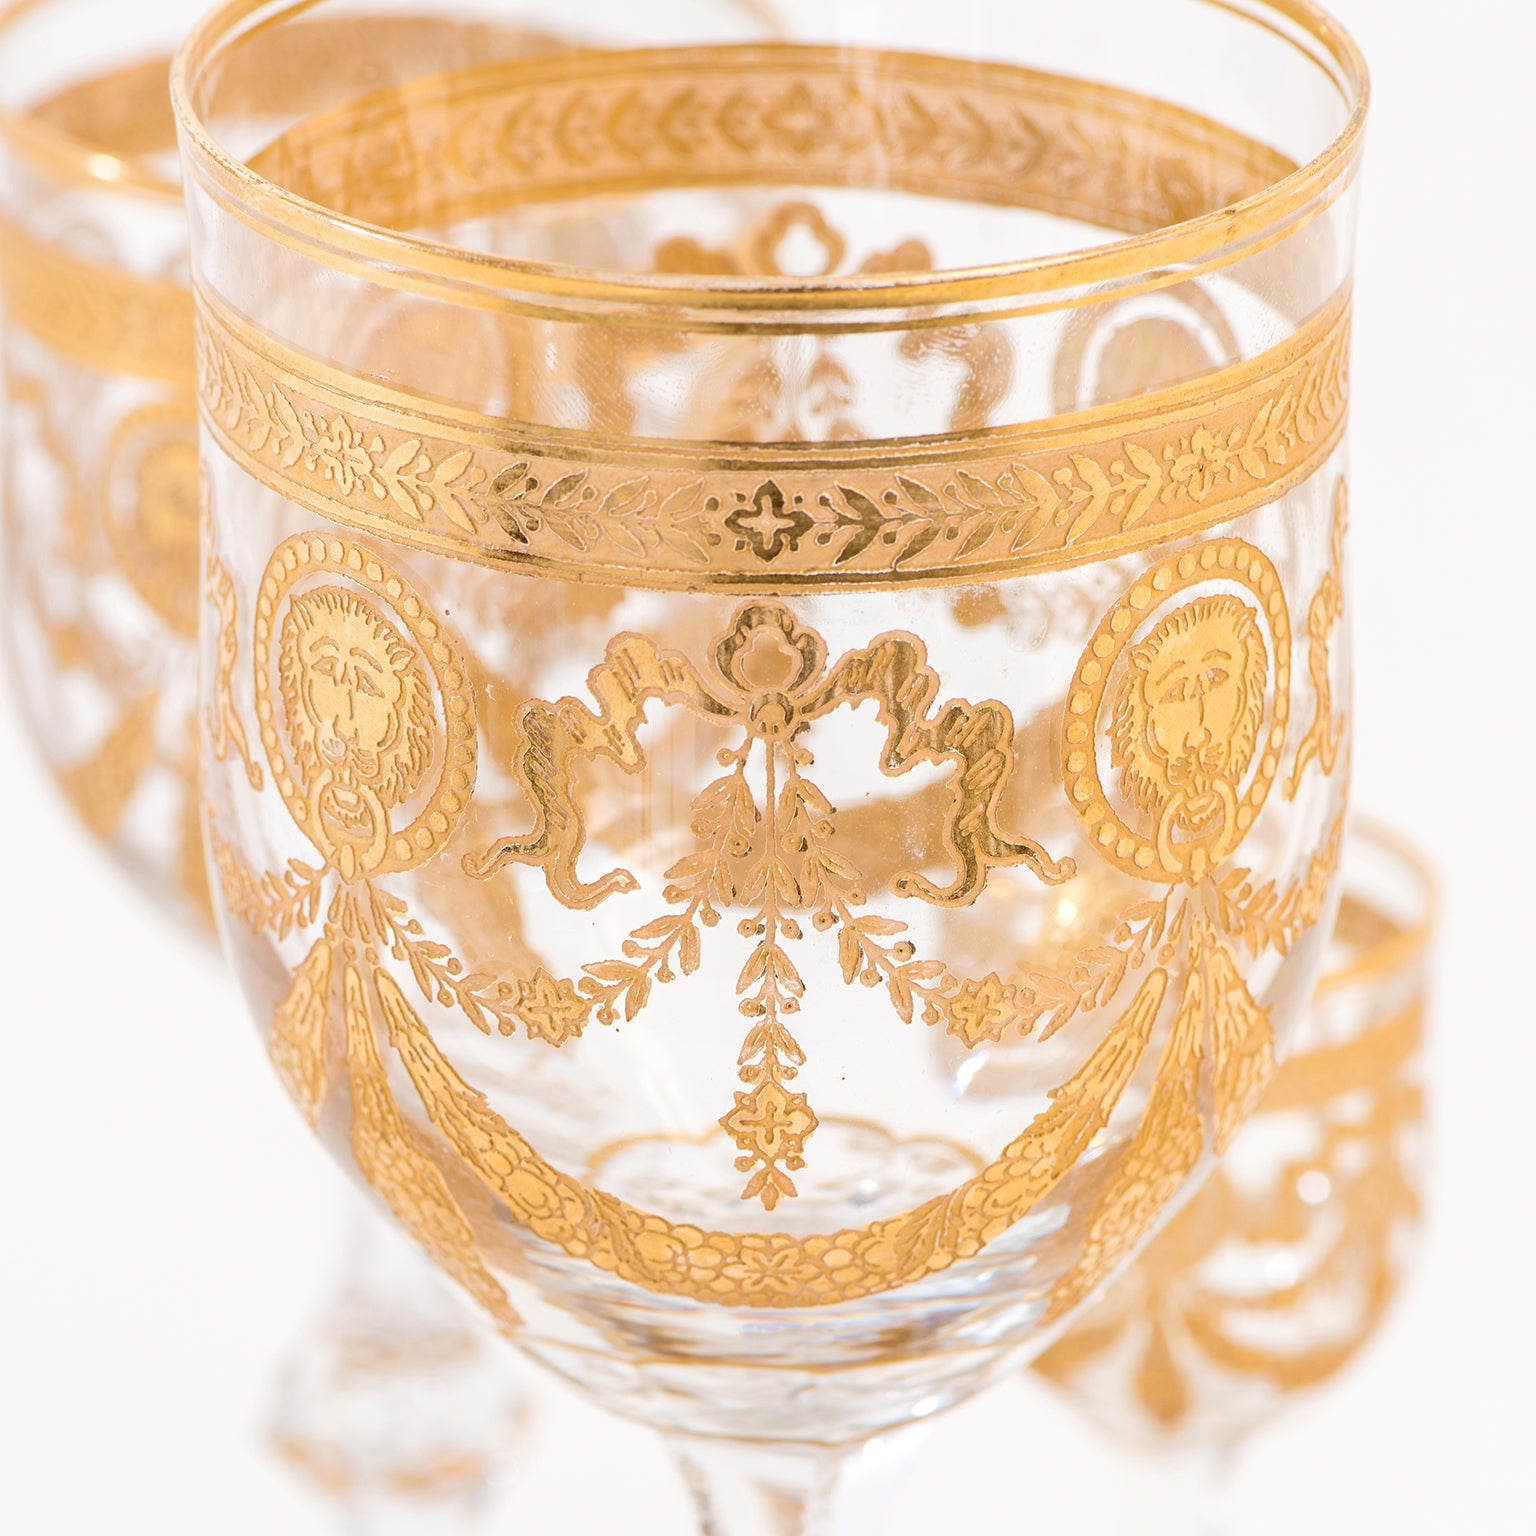 Set of 36 St. Louis Congress Pattern Goblets For Sale at 1stdibs